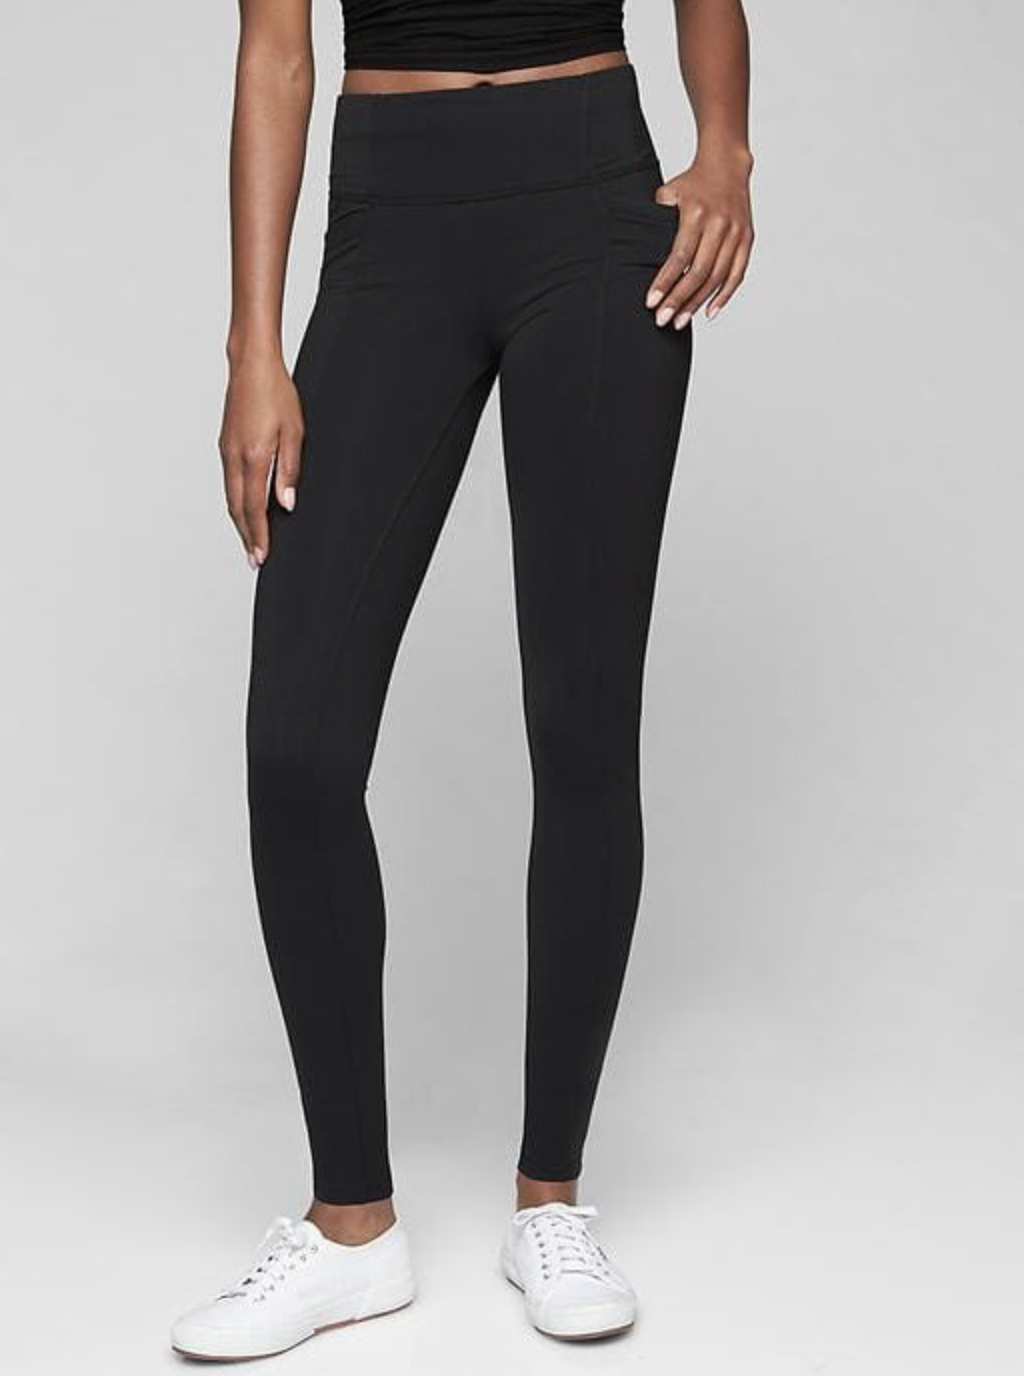 Athleta Metro High Waisted Leggings